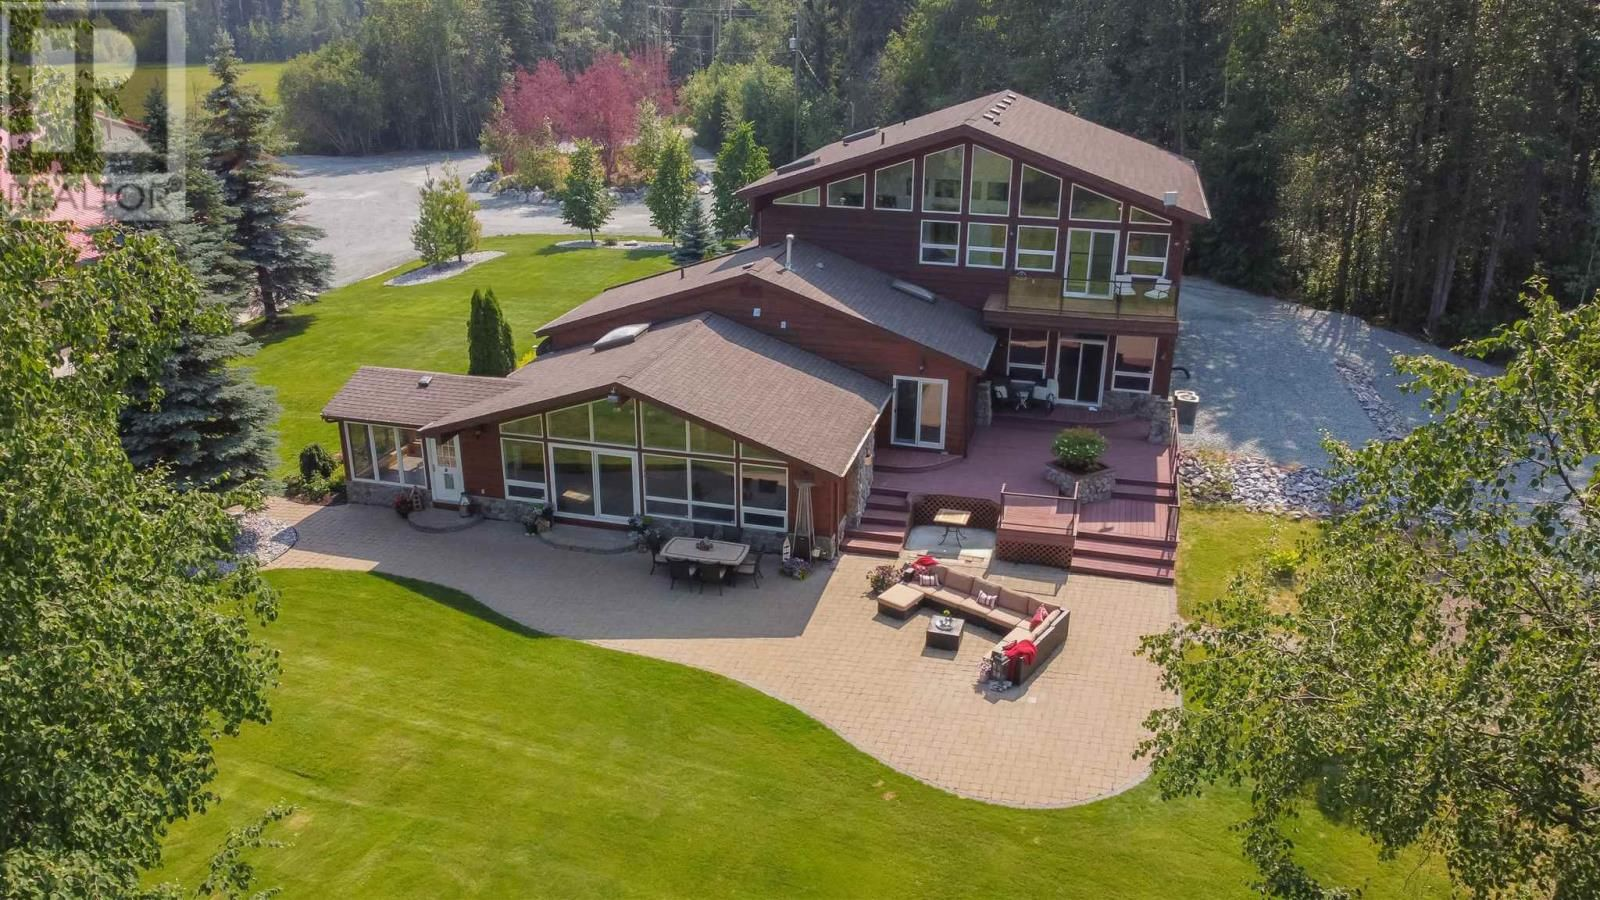 Main Photo: 25890 FIELD ROAD in Prince George: House for sale : MLS®# R2602085